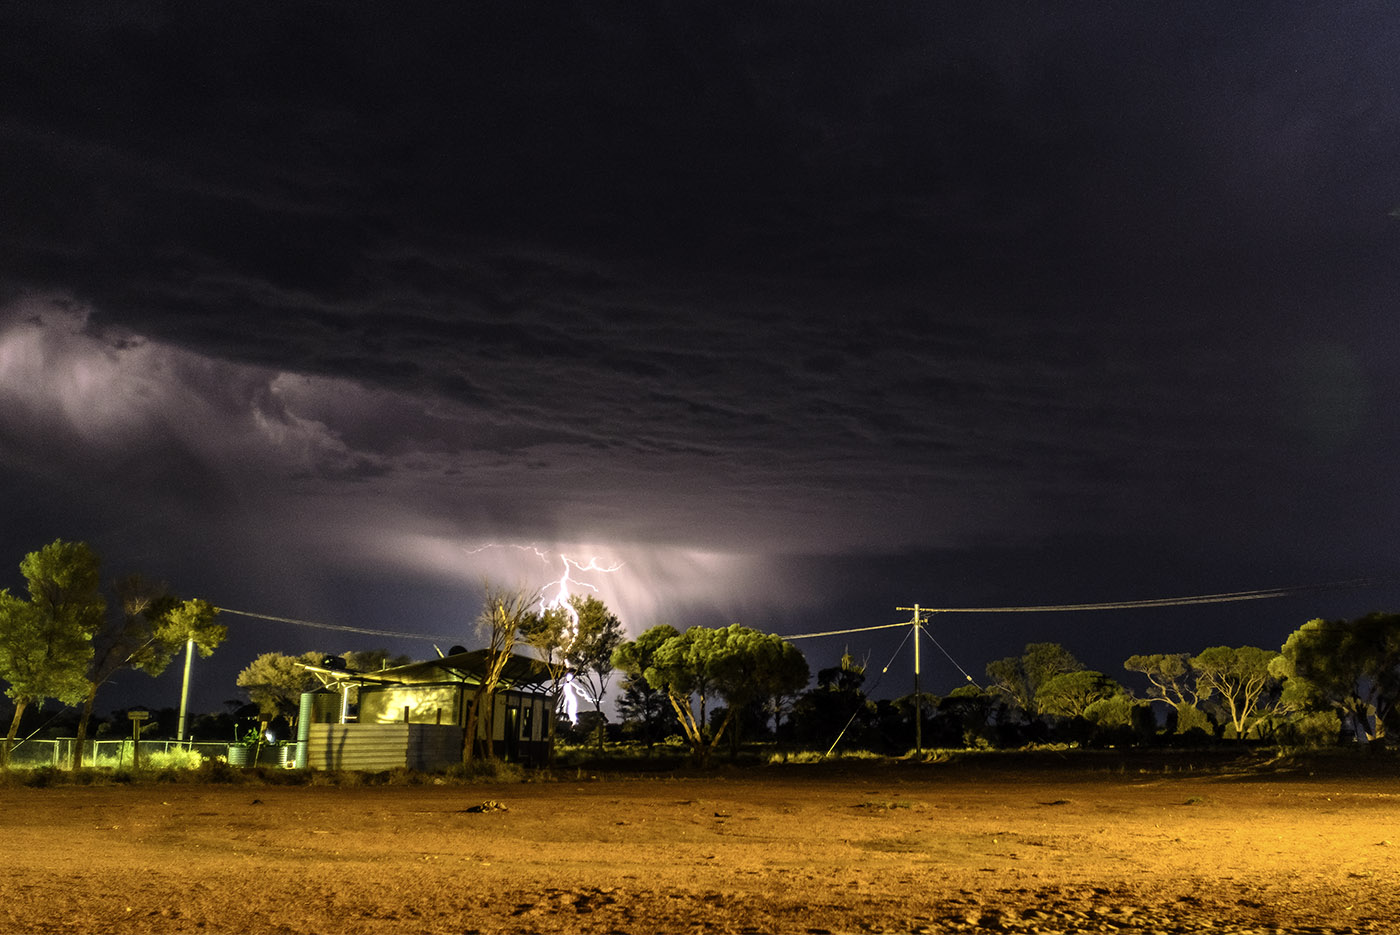 Our neighbour's house on a stormy night in the Western Desert. (c) Claudia Jocher 2016